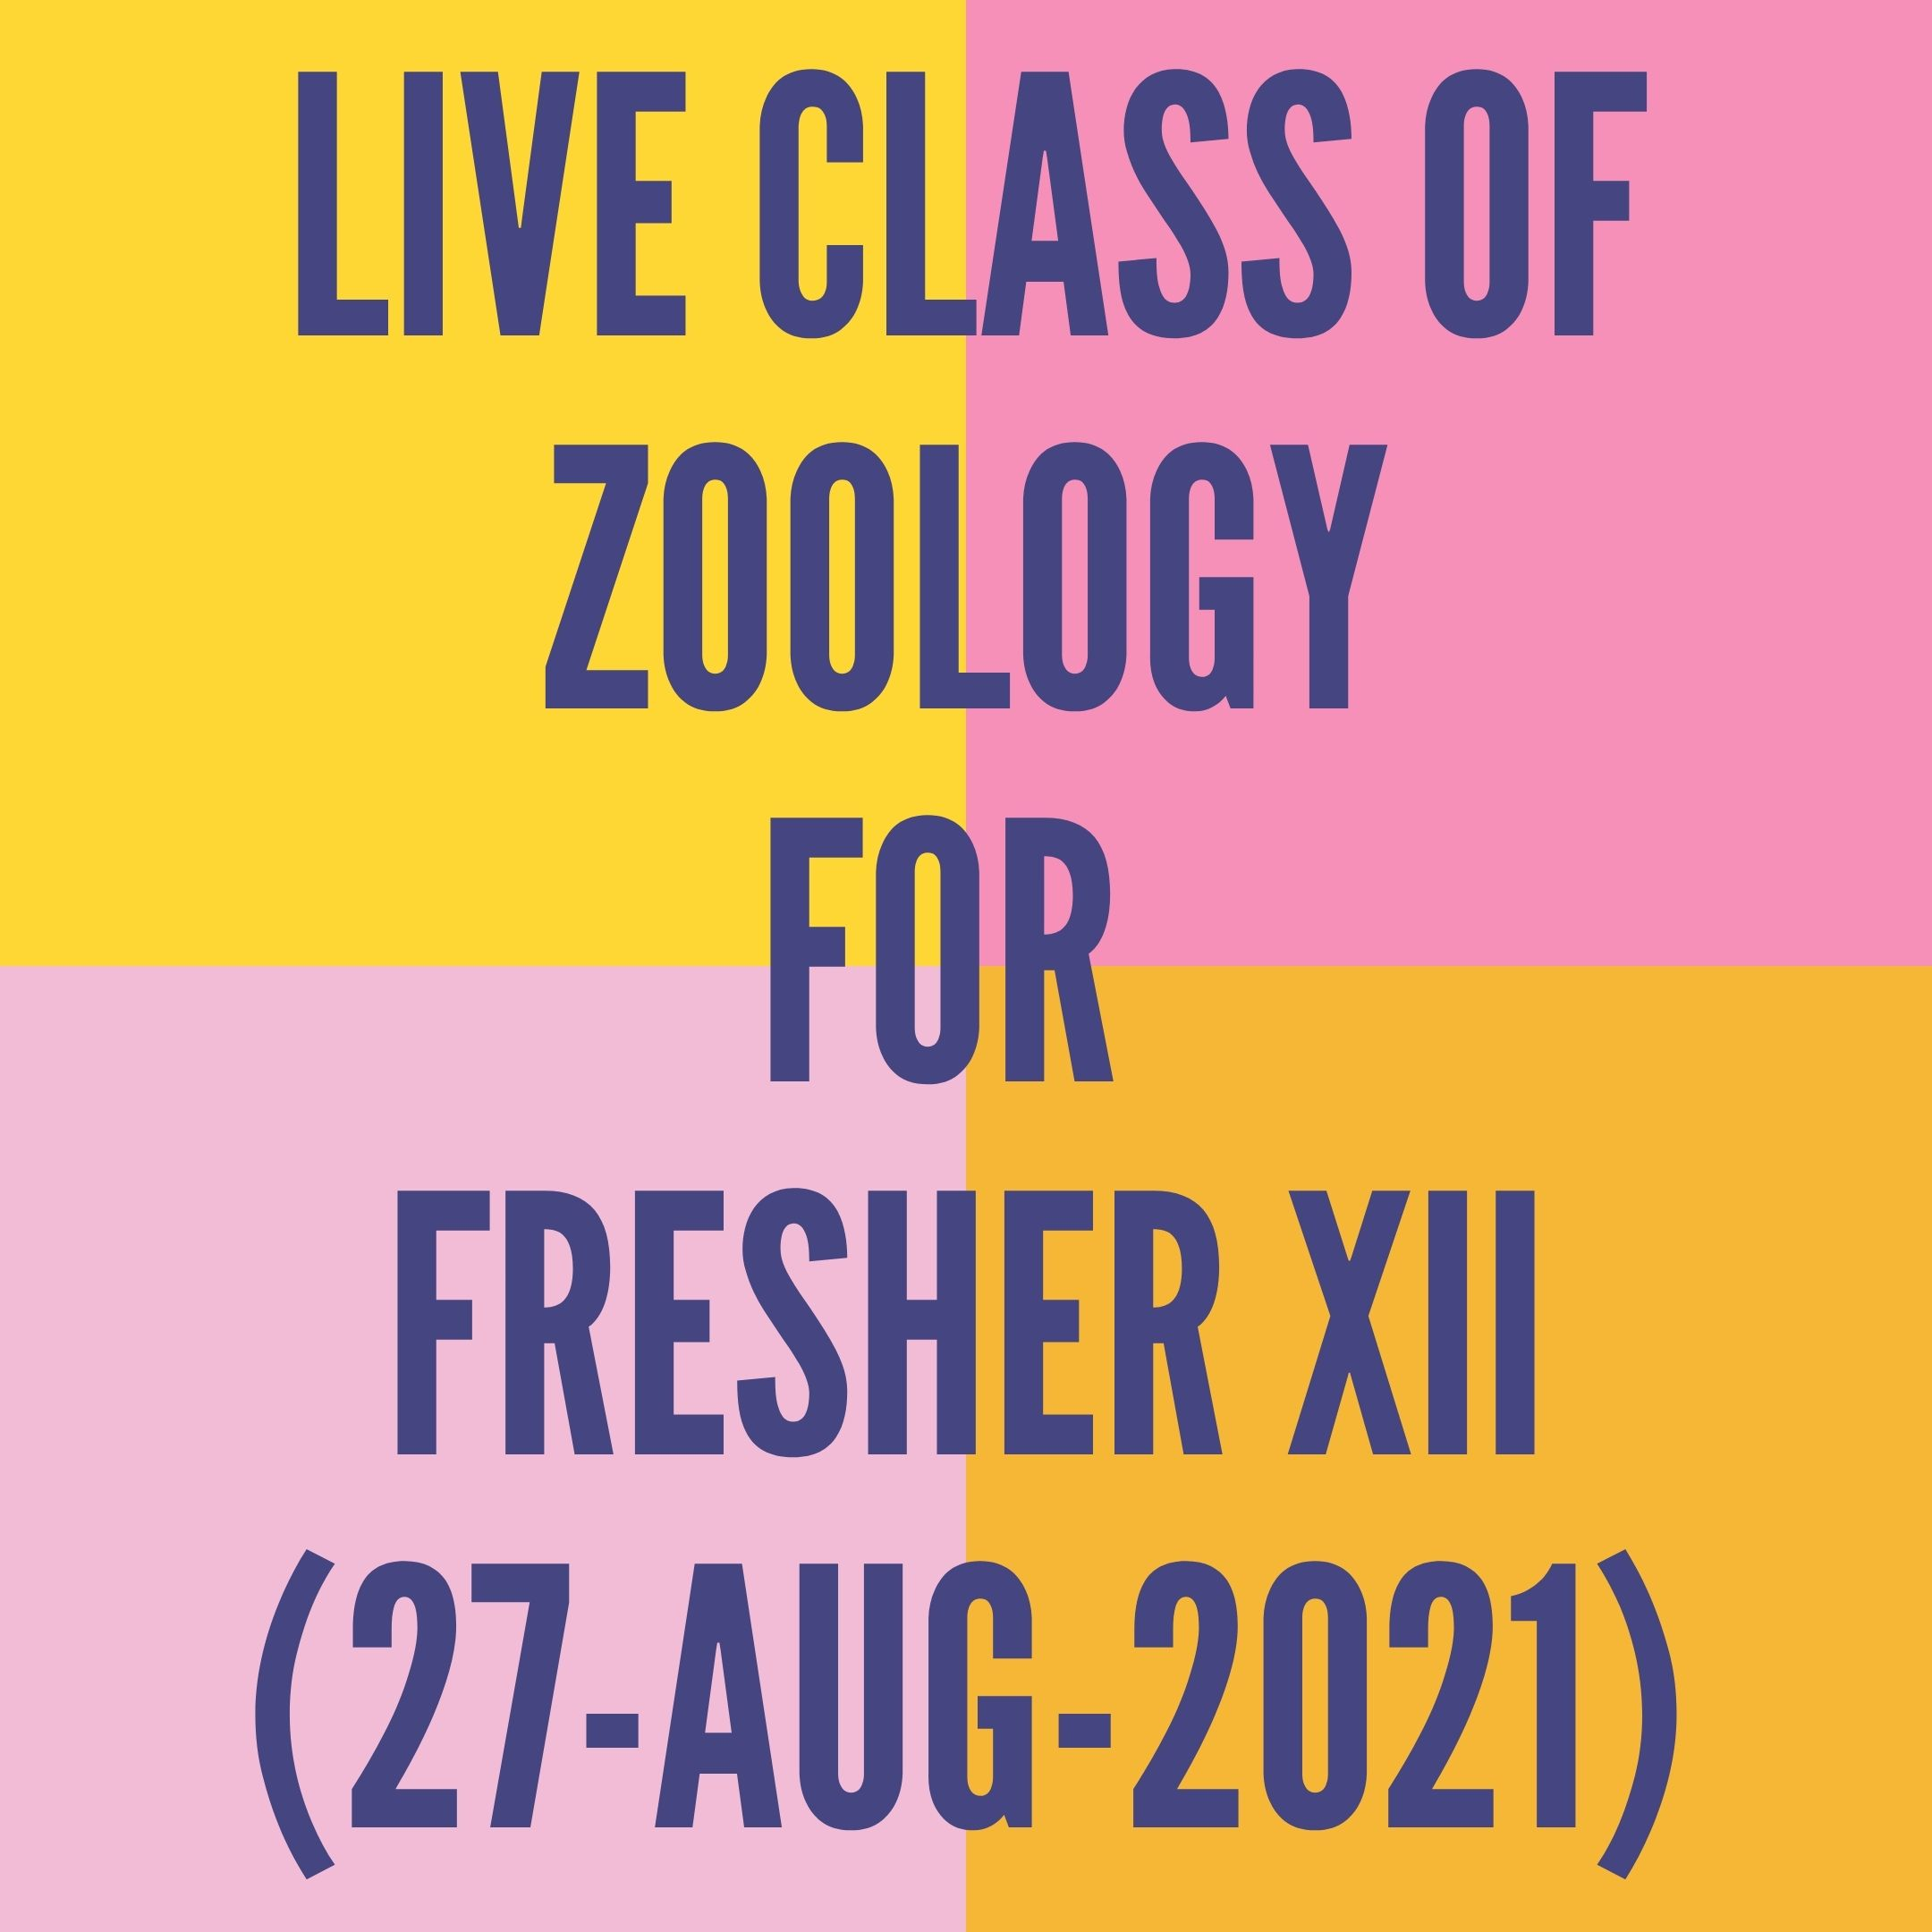 LIVE CLASS OF ZOOLOGY FOR FRESHER XII (27-AUG-2021) HUMAN HEALTH & DISEASE